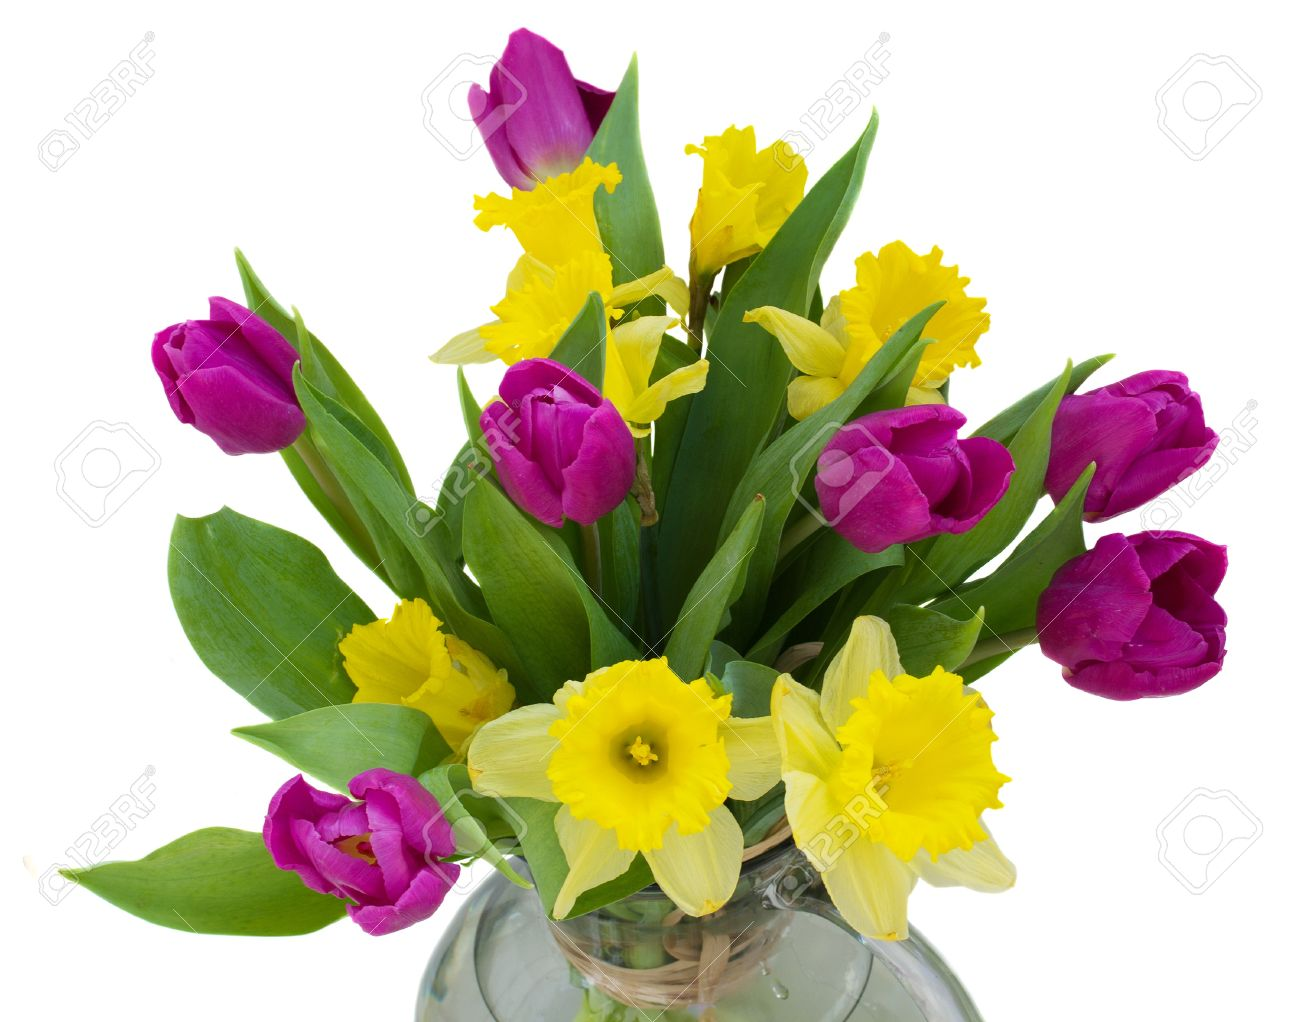 Bouquet Of Spring Flowers - Purple Tulips And Yellow Daffodils Stock ...